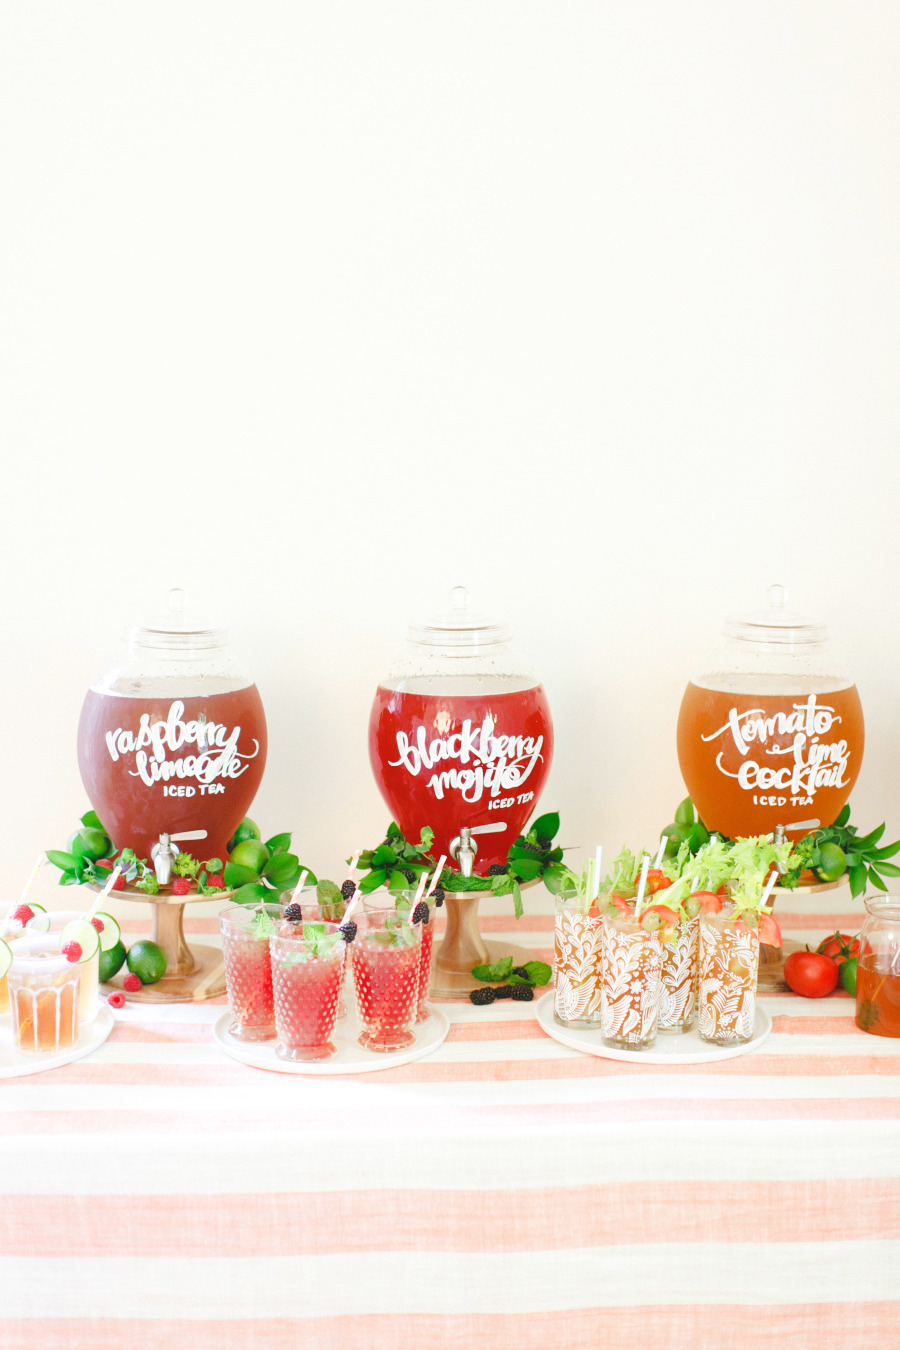 14 unique wedding reception ideas serve a variety of cocktails once your guests arrive at the reception 15wedding ideas for junglespirit Images